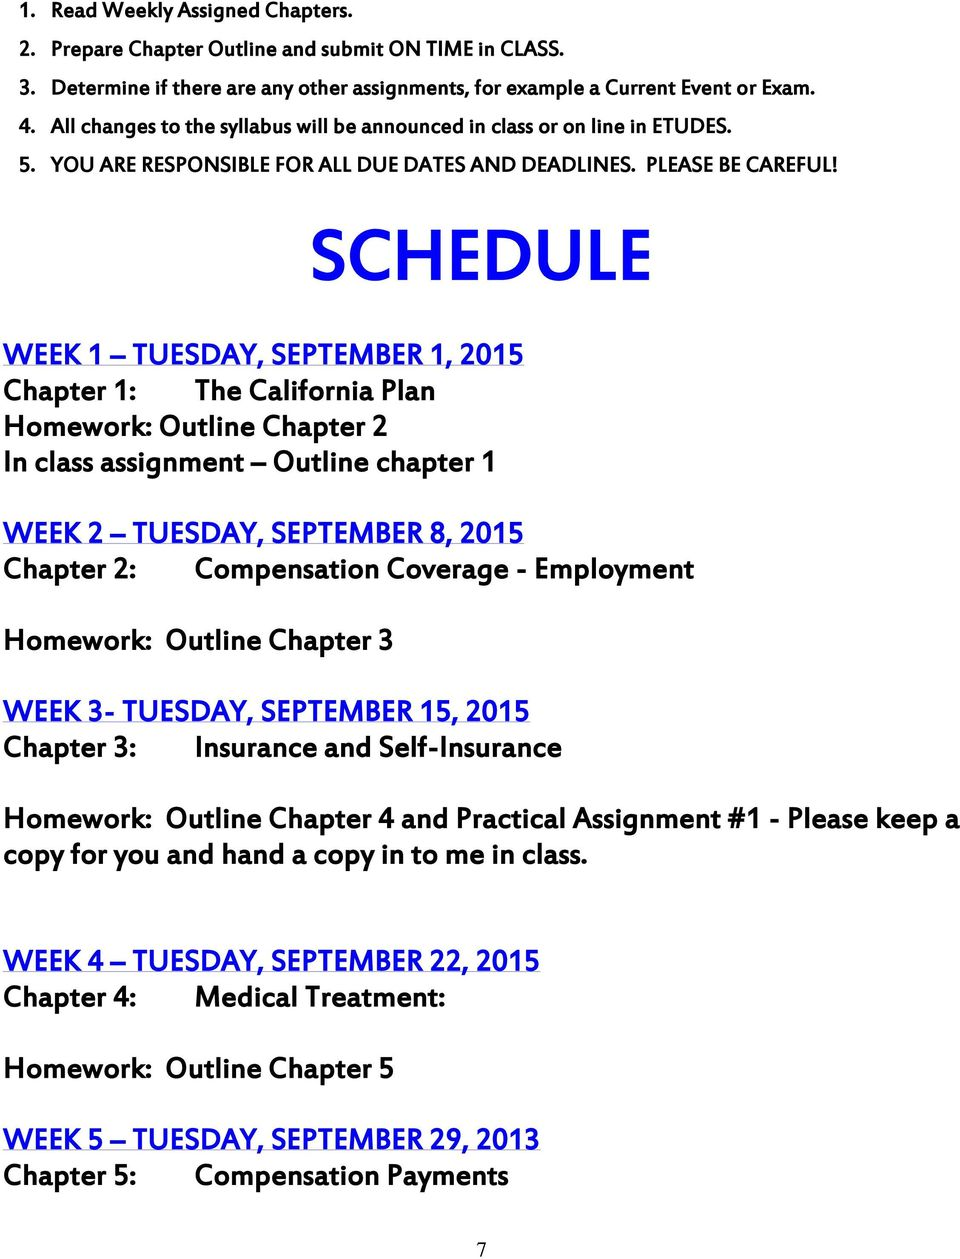 SCHEDULE WEEK 1 TUESDAY, SEPTEMBER 1, 2015 Chapter 1: The California Plan Homework: Outline Chapter 2 In class assignment Outline chapter 1 WEEK 2 TUESDAY, SEPTEMBER 8, 2015 Chapter 2: Compensation